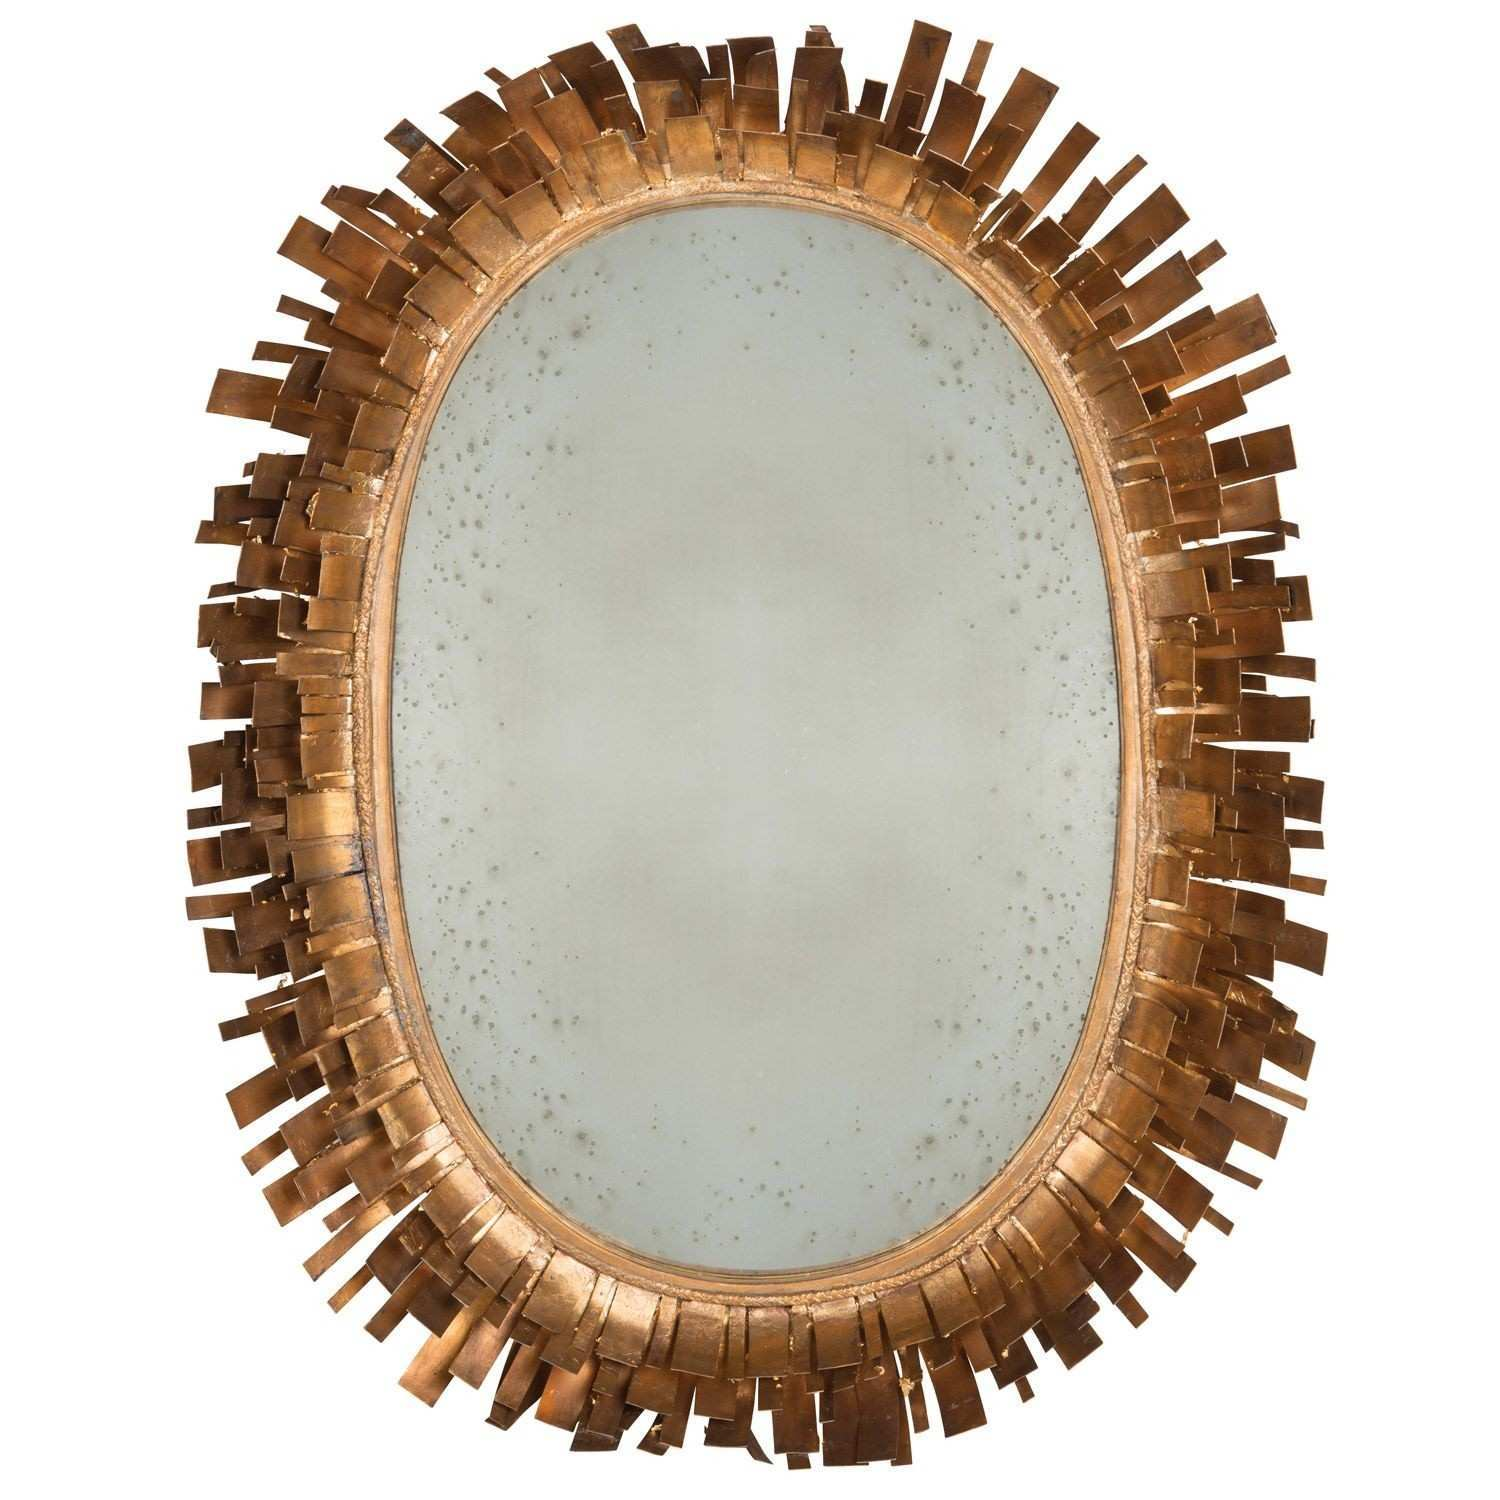 Decorative Wall Mirrors Unique Brushed Nickel Vanity Wall Mirror